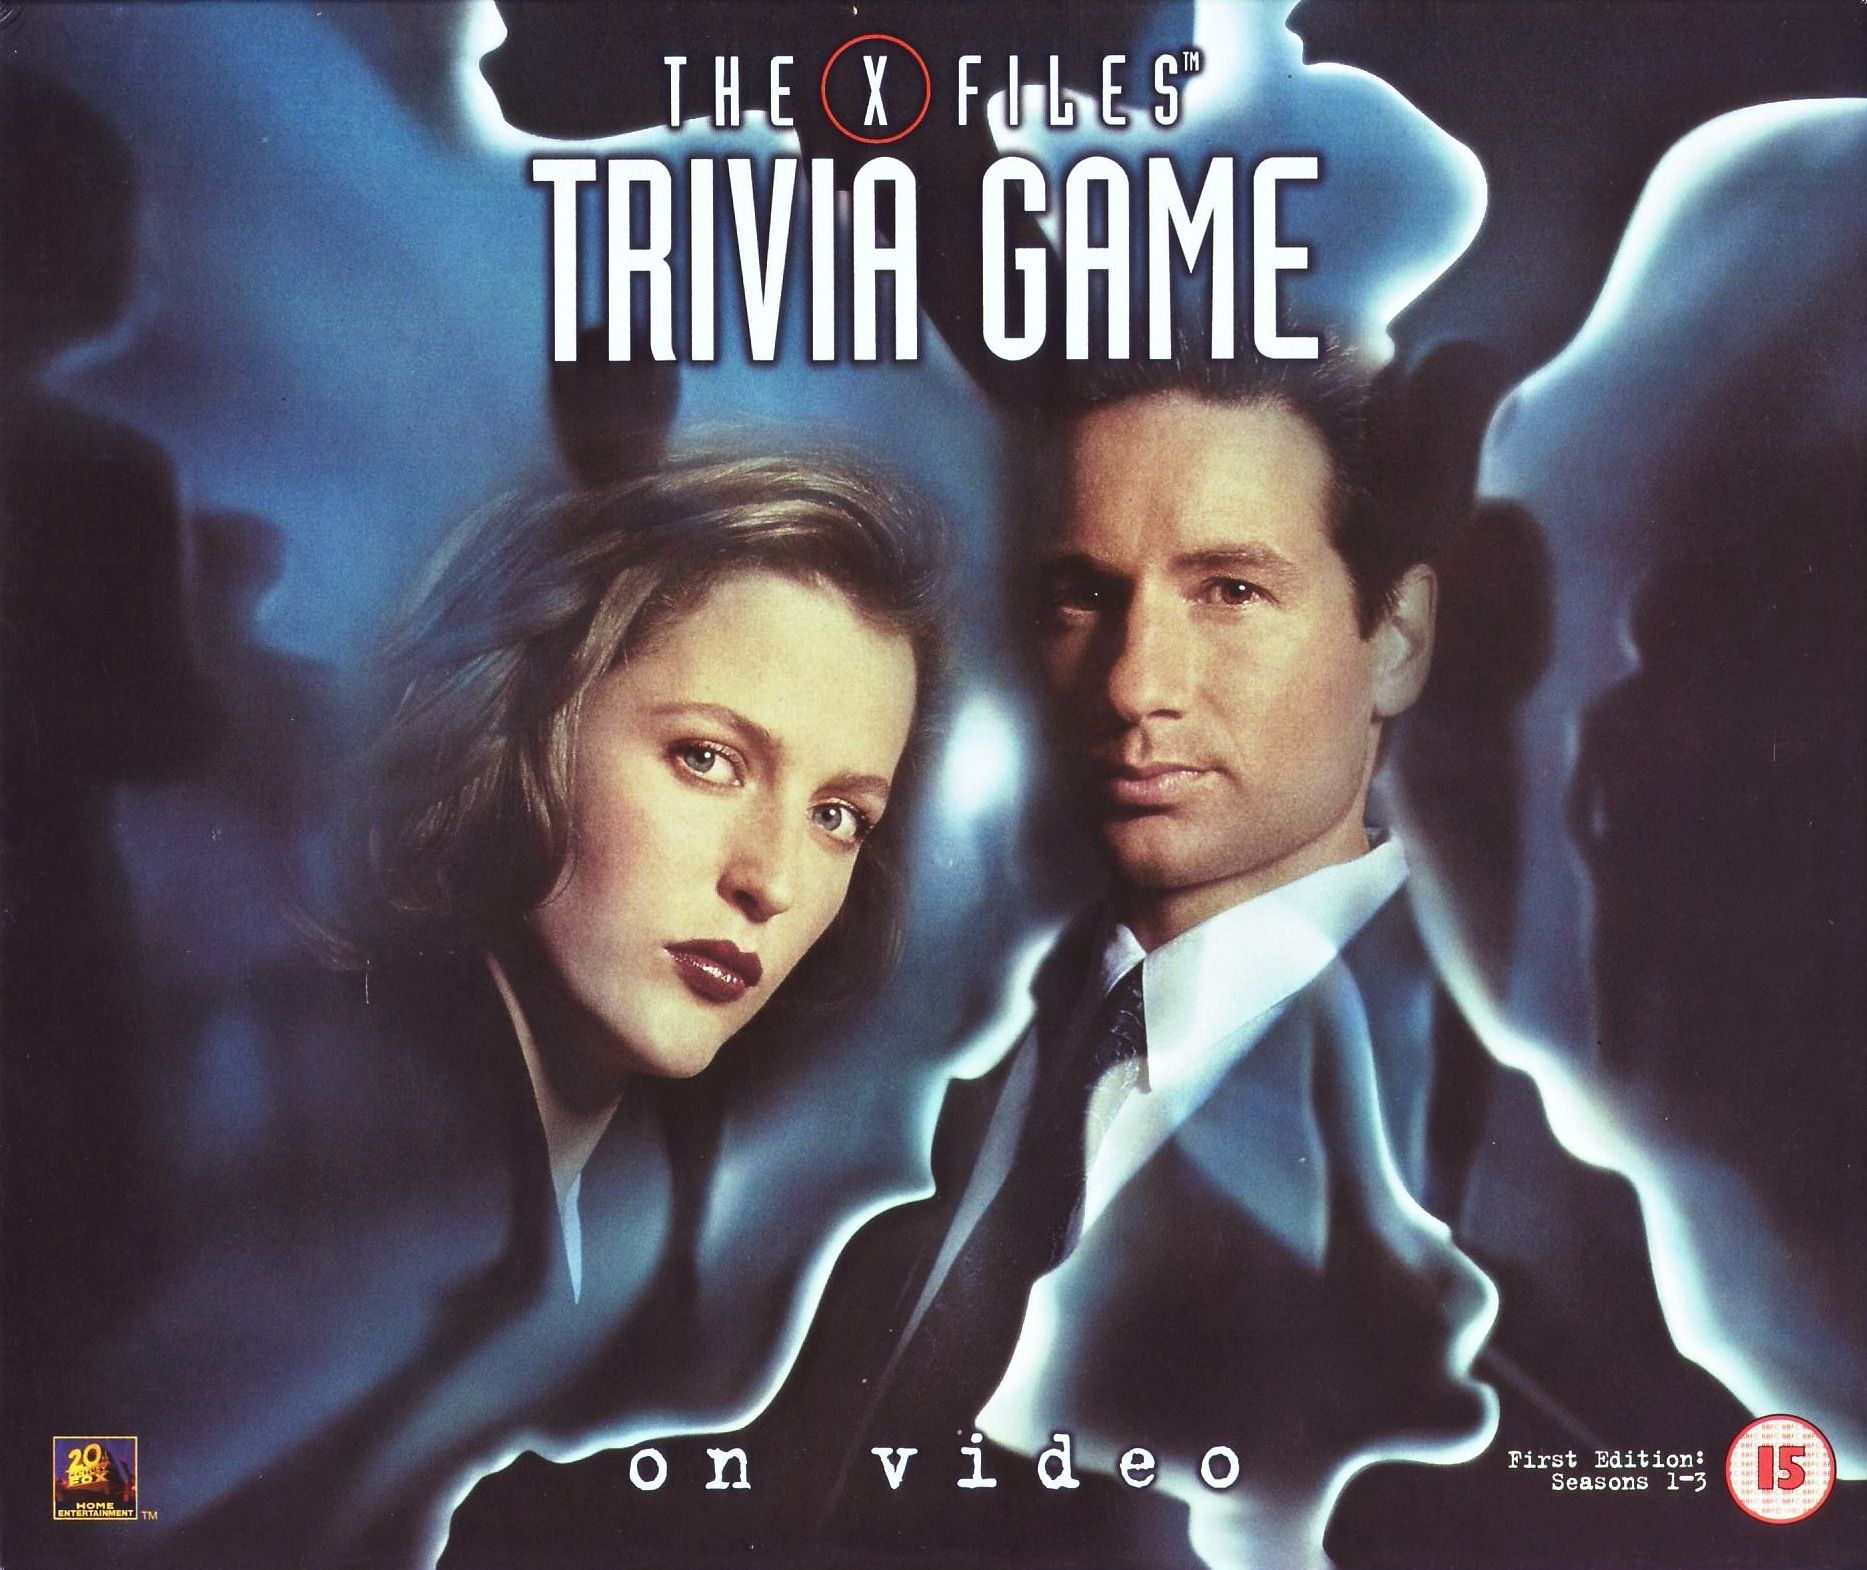 The X-Files Trivia Game